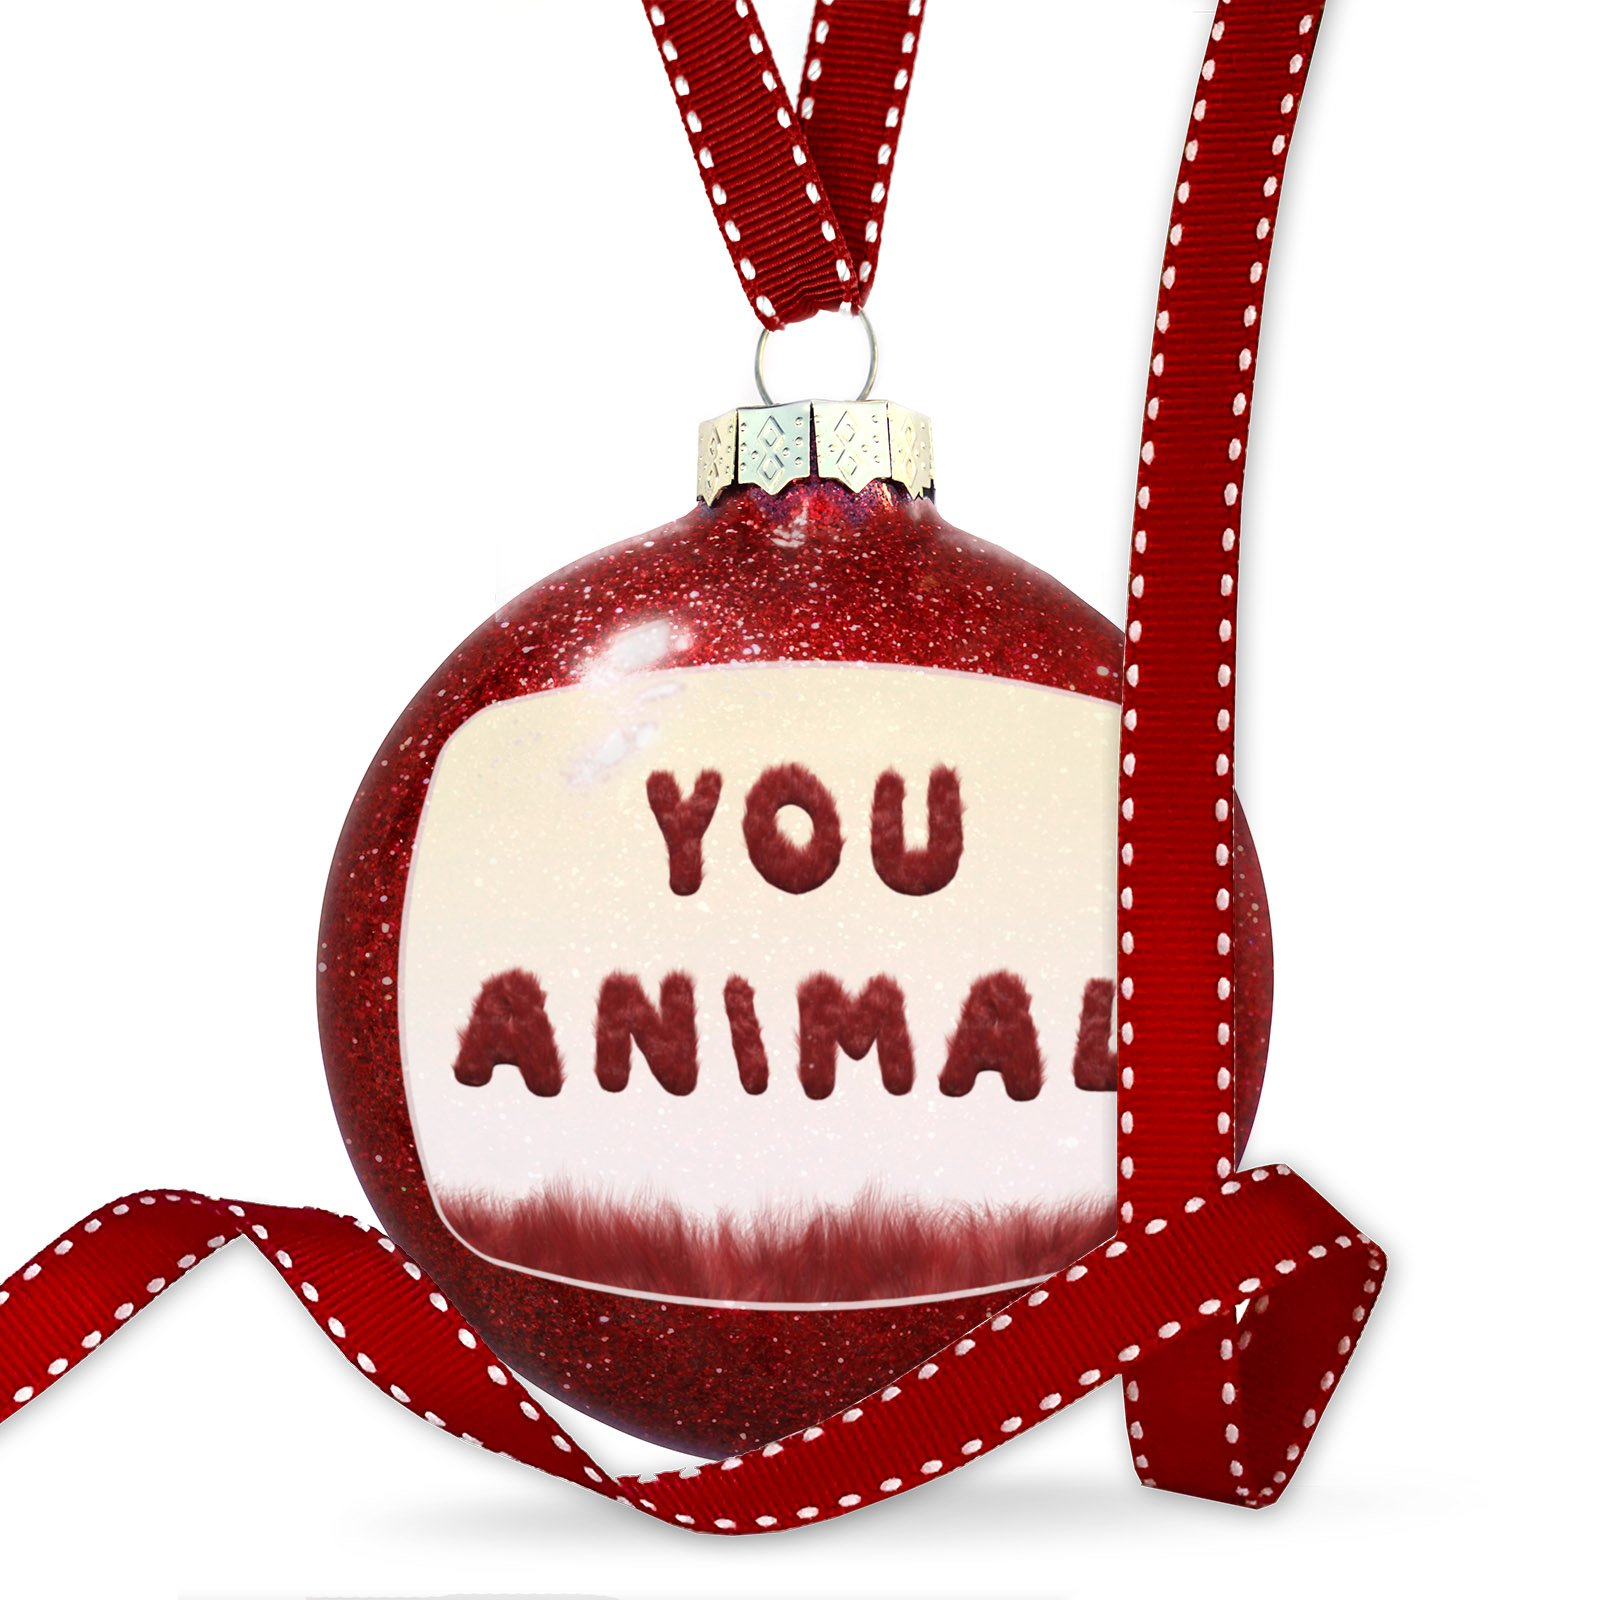 Christmas Decoration You Animal Red Monster Hair Ornament